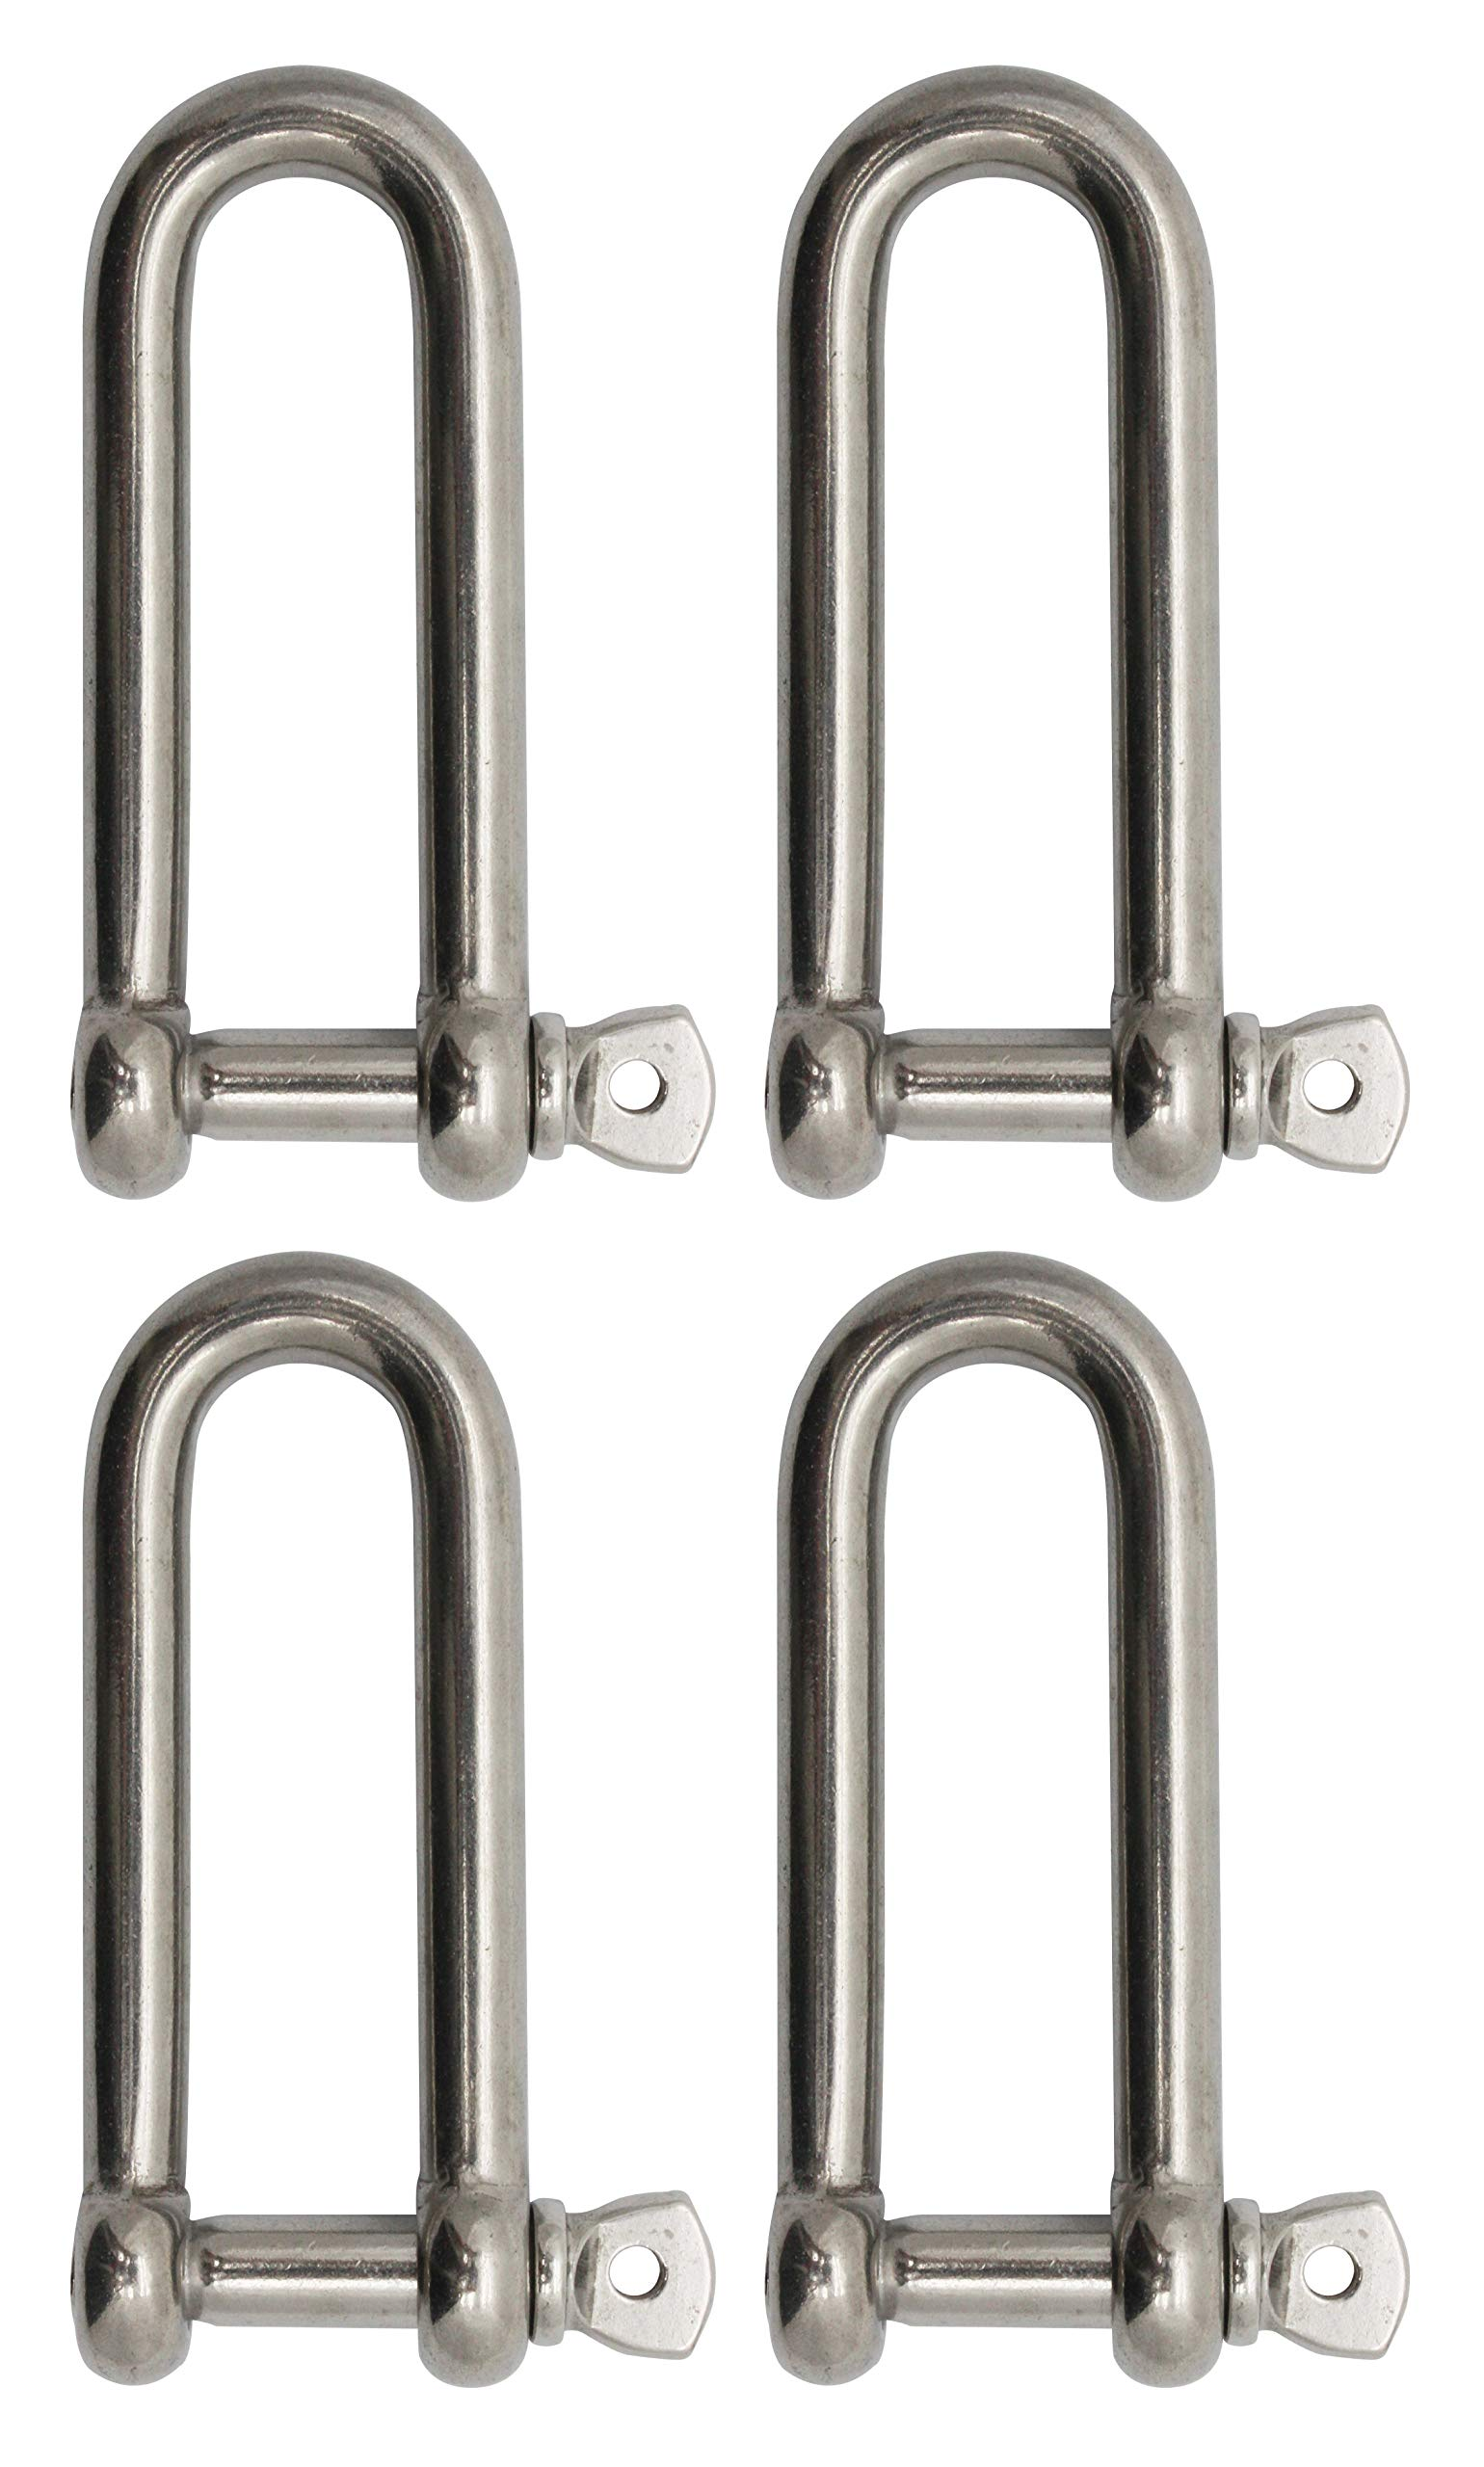 "Extreme Max 3006.8204.4 BoatTector Stainless Steel Long D Shackle - 5/16"", 4-Pack,Silver"